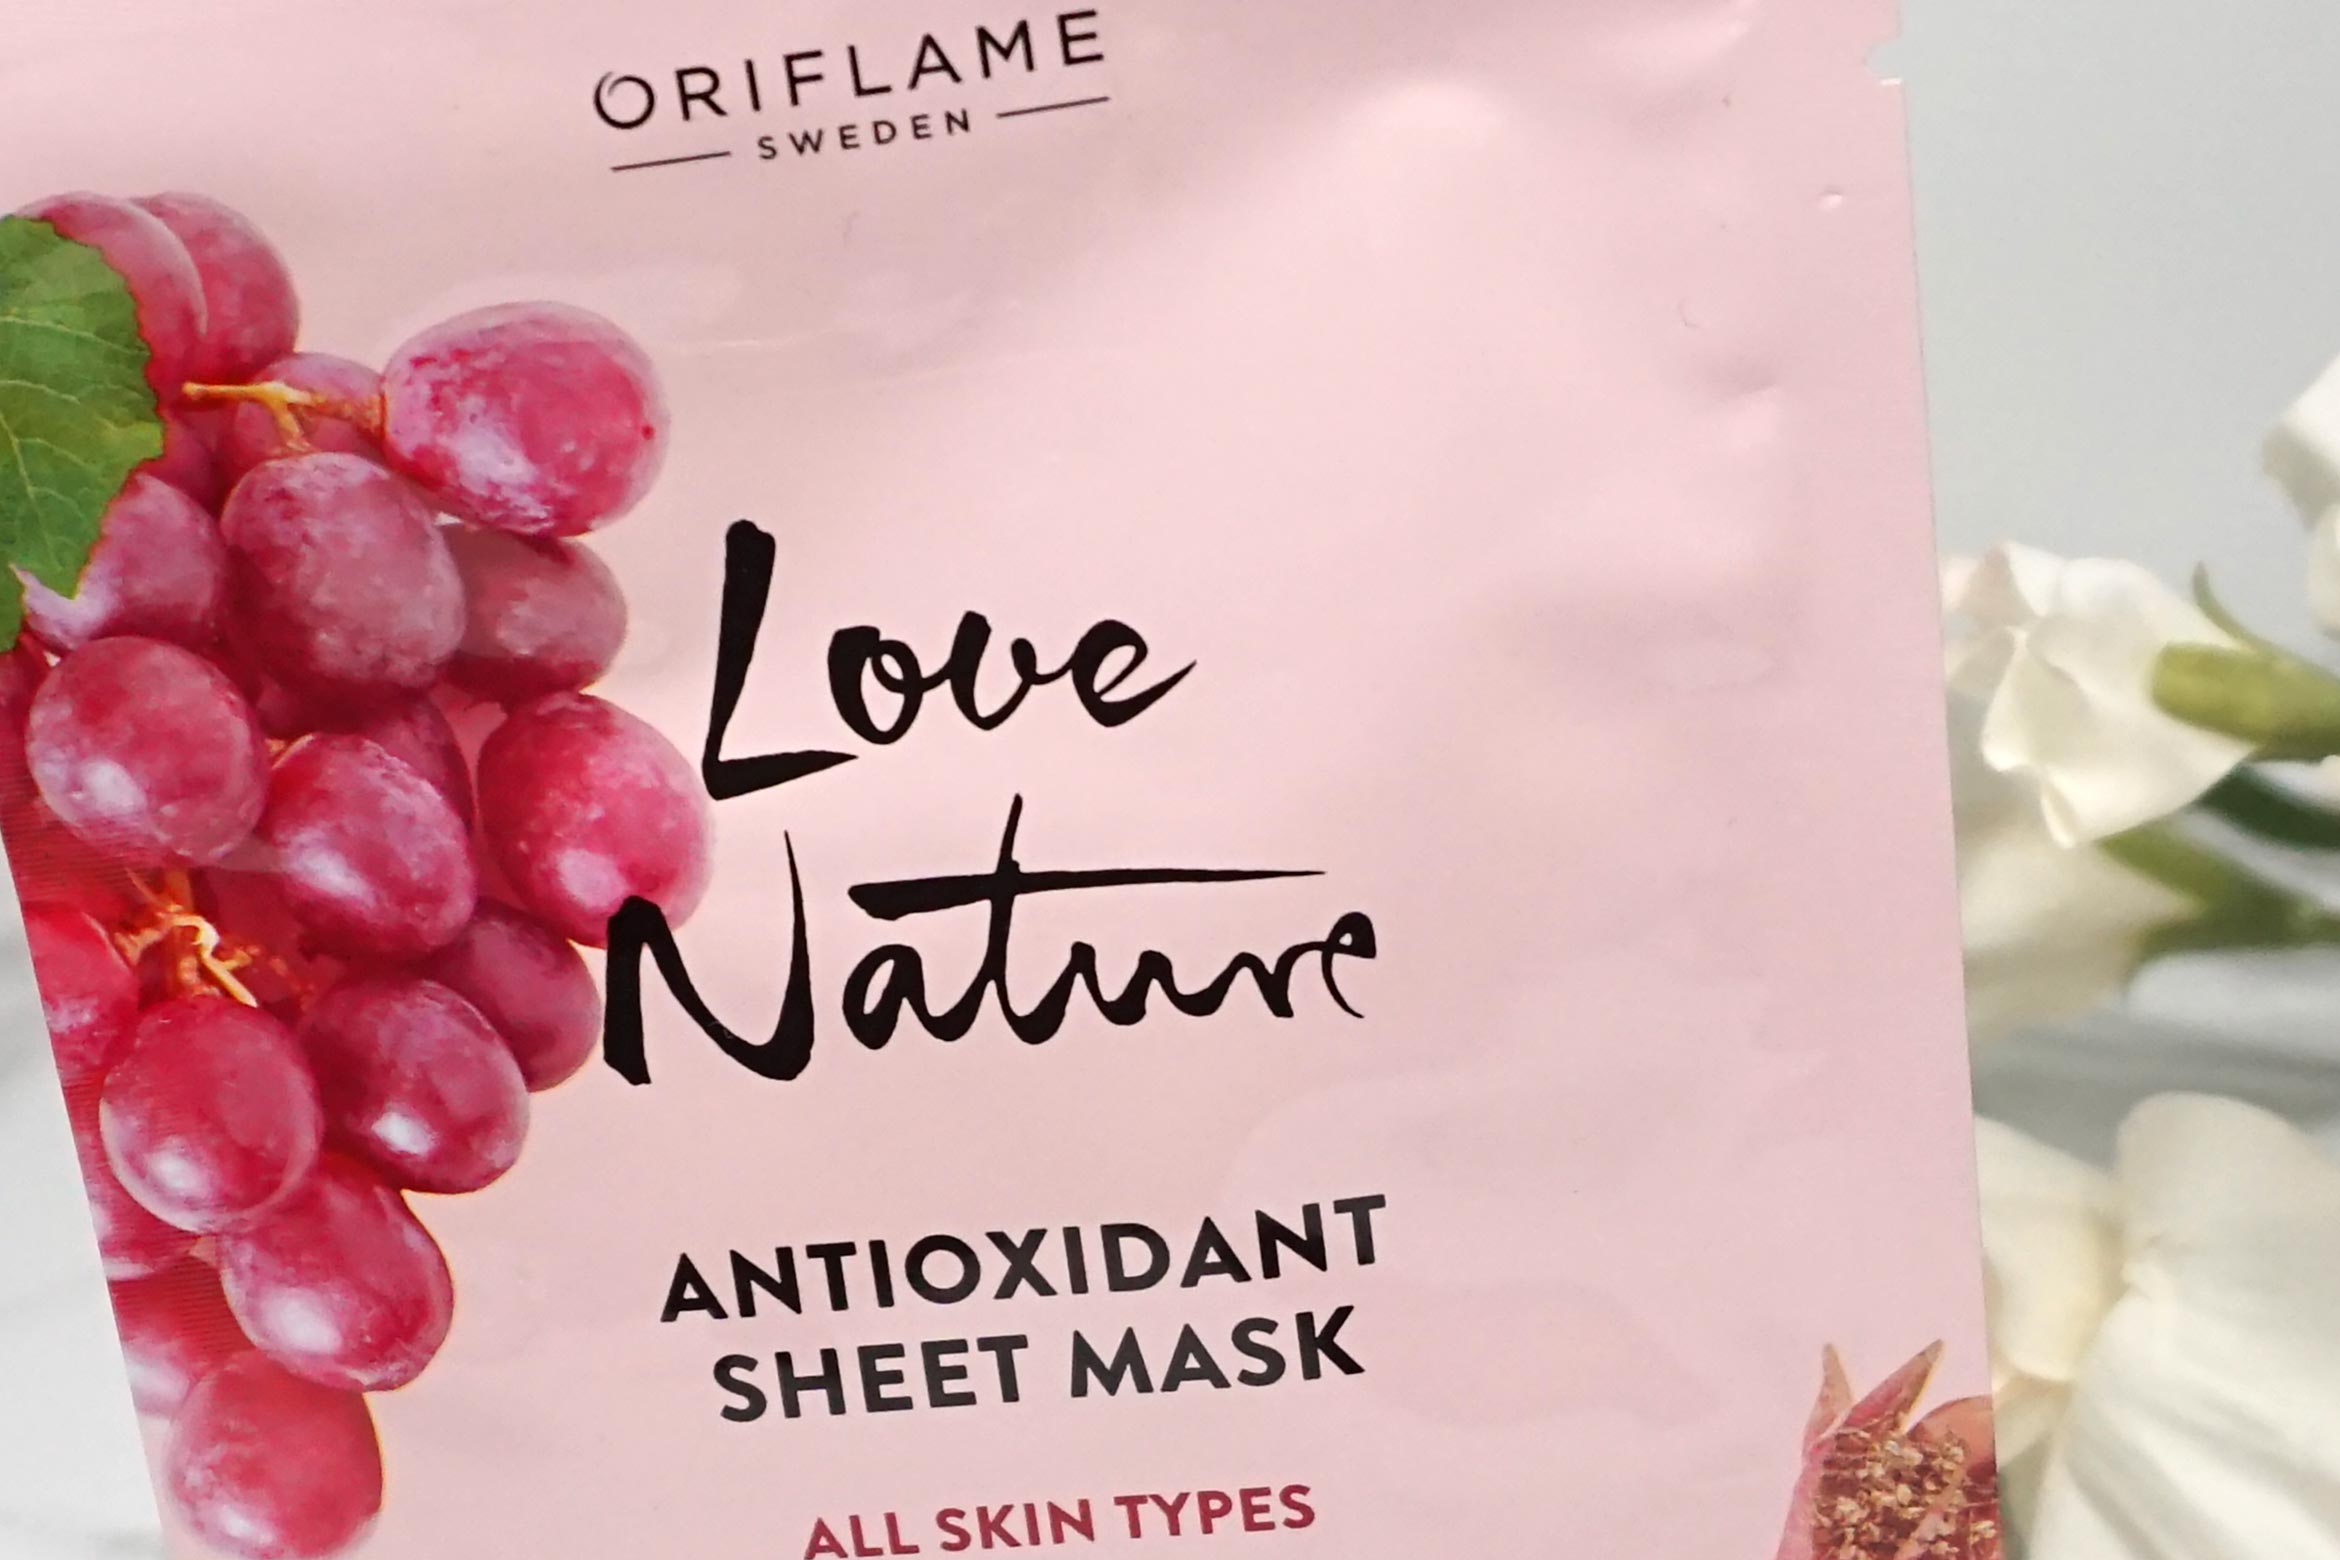 oriflame-love-nature-sheet-mask-review-1